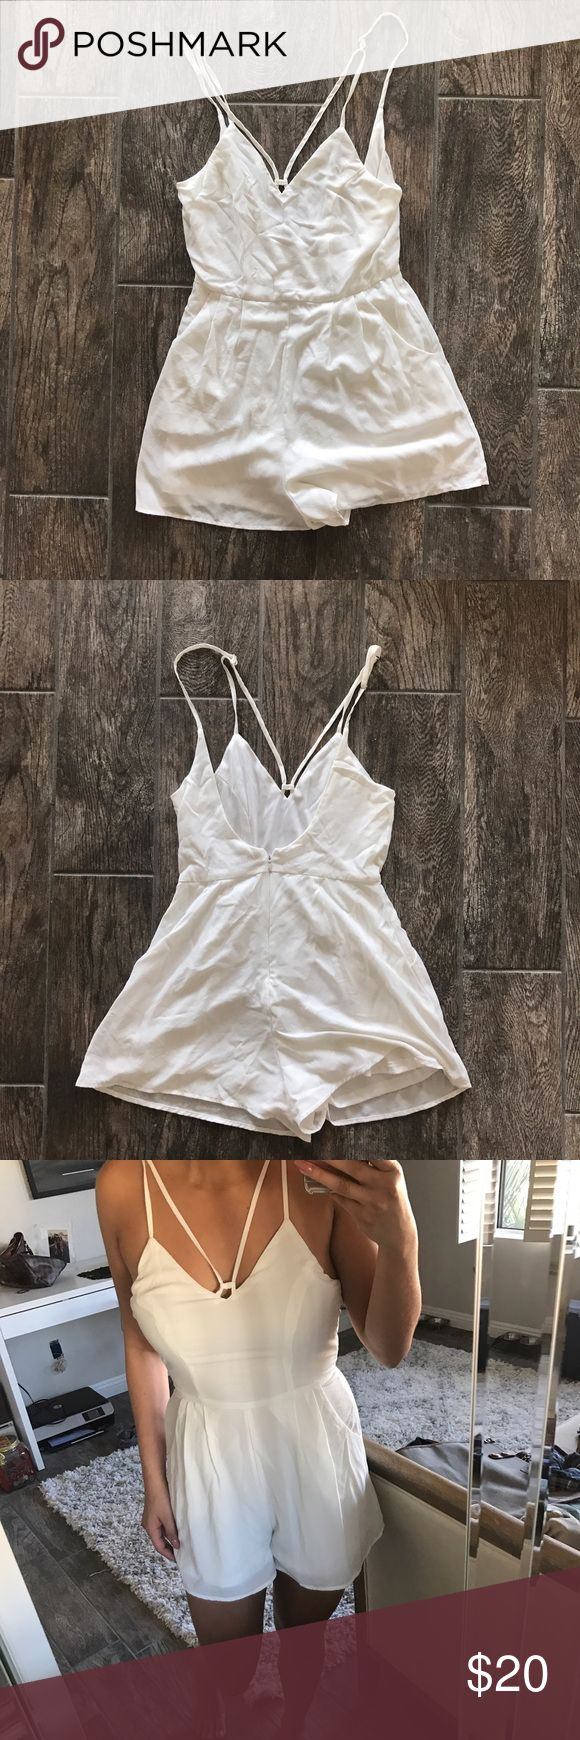 White Romper ****NOT SABO SKIRT JUST USED FOR EXPOSURE***  Super cute white Romper that's perfect for a festival or vacation! It has extra lining under so you can wear nude undergarments and not worry about it being see through. Extremely flattering and looks best with a denim jacket around the waist. Bought from a boutique in Newport Beach, CA.  Size: Small  🌸Please note that I am not interested in trading at this time🌸 Sabo Skirt Dresses